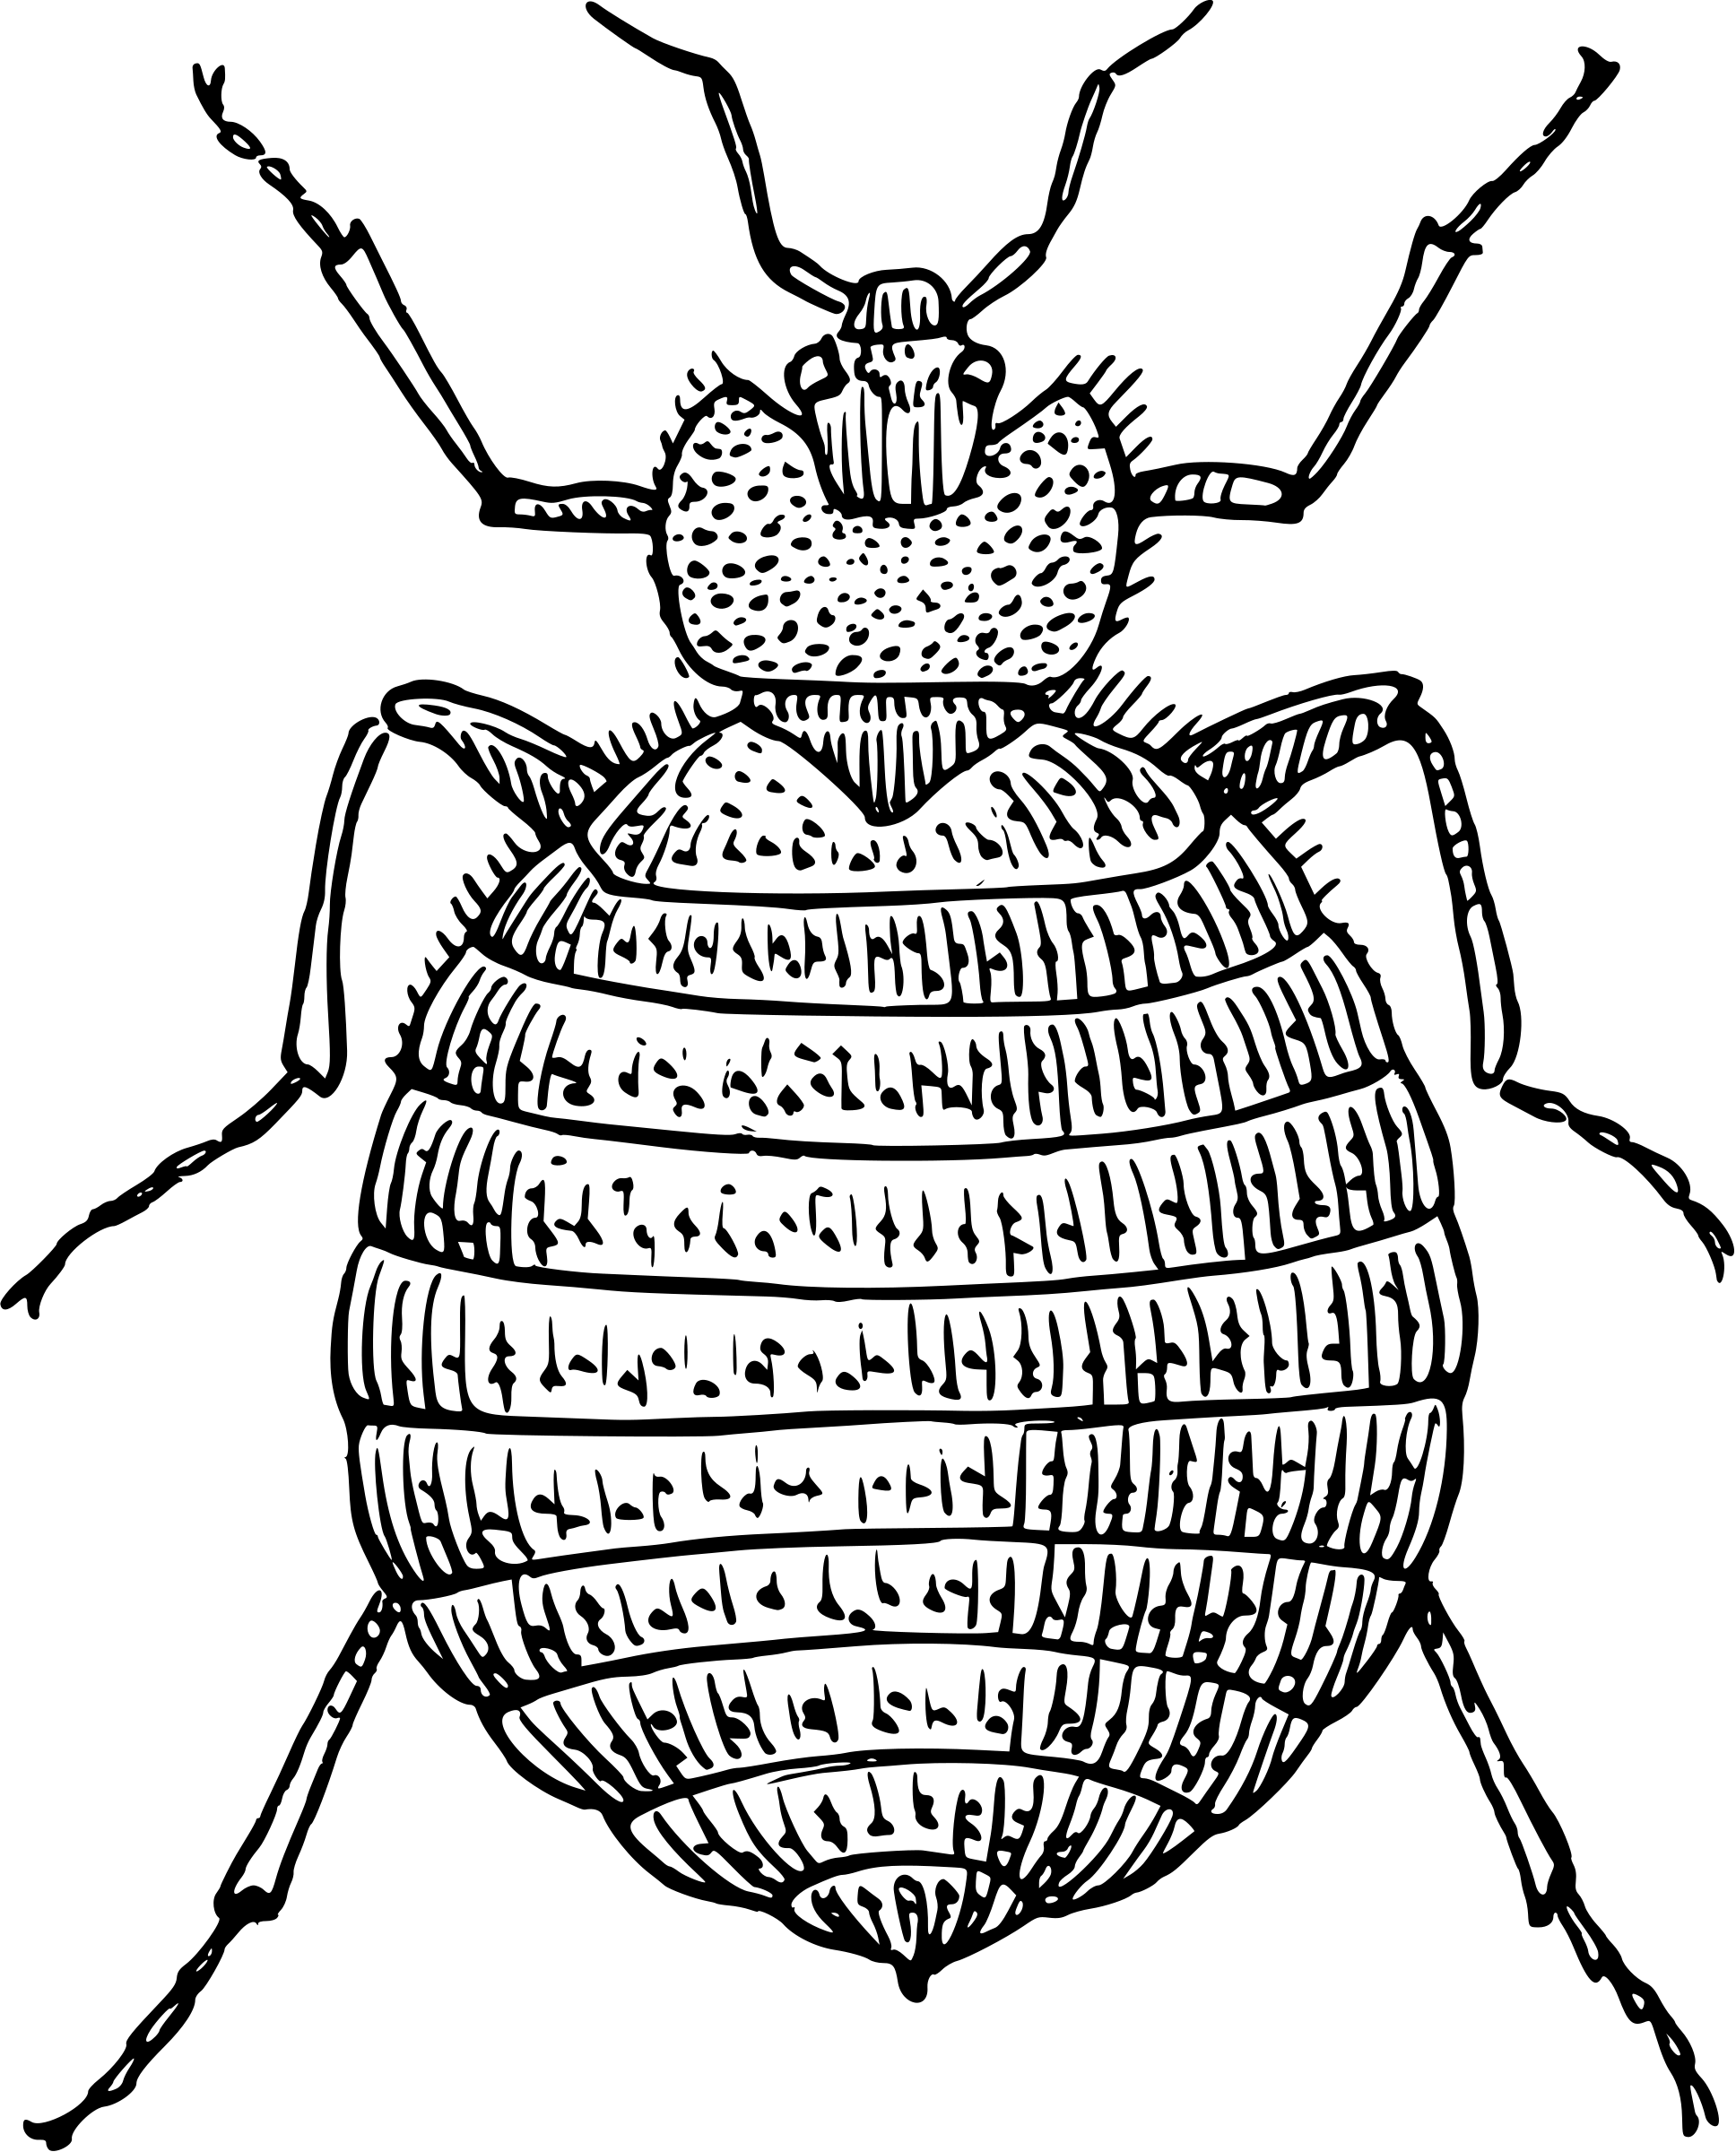 Bed bug clipart » Clipart Portal.